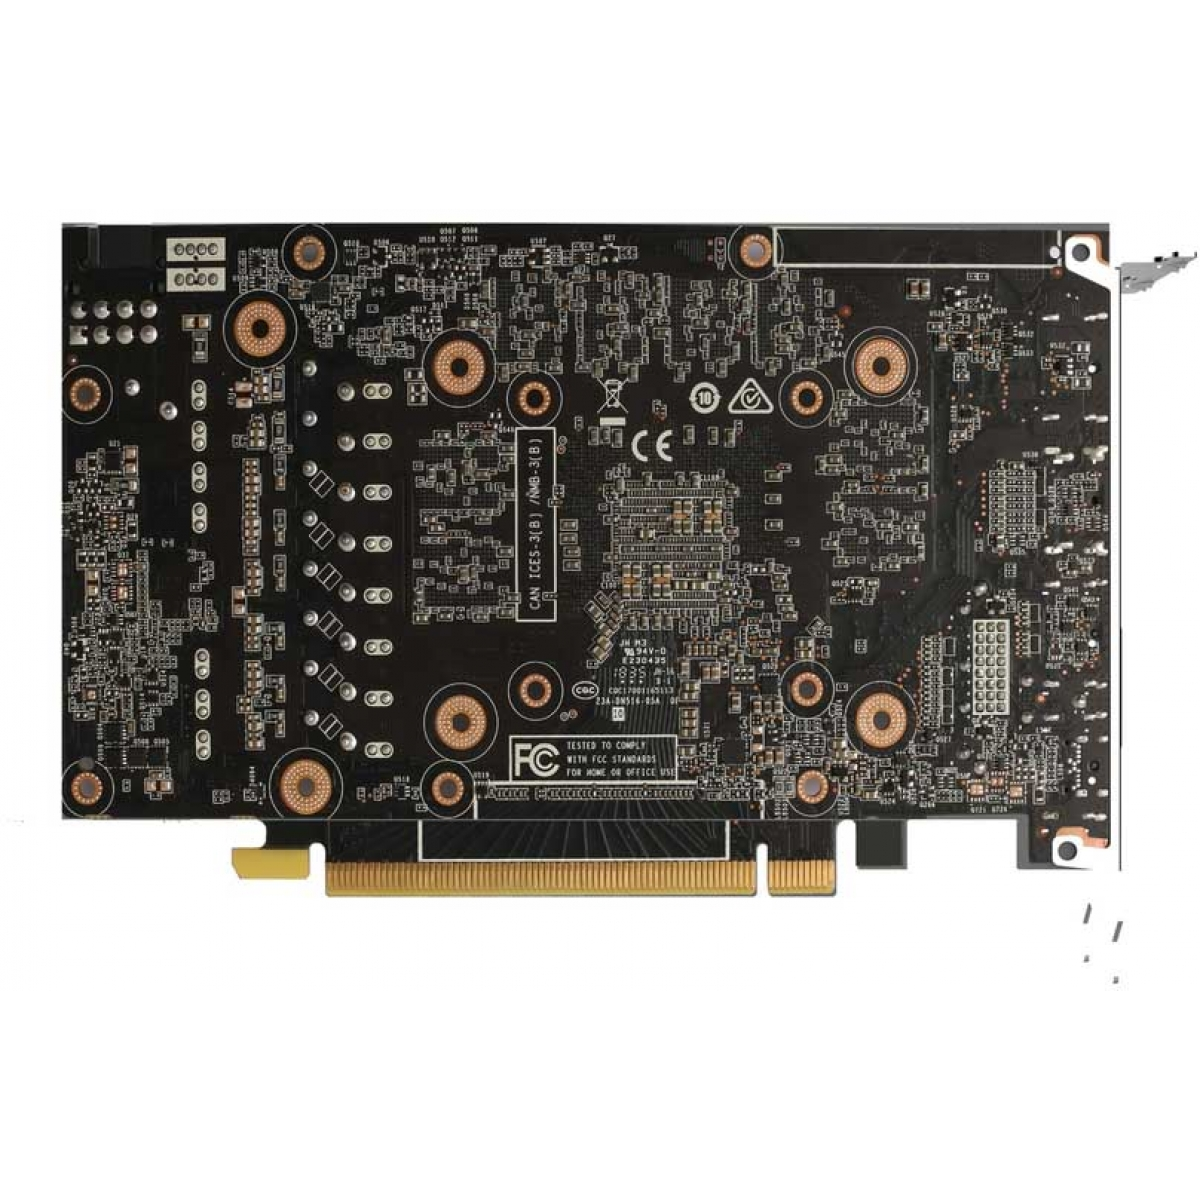 Placa de Vídeo Zotac GeForce GTX 1660 Dual, 6GB GDDR5, 192Bit, ZT-T16600F-10L